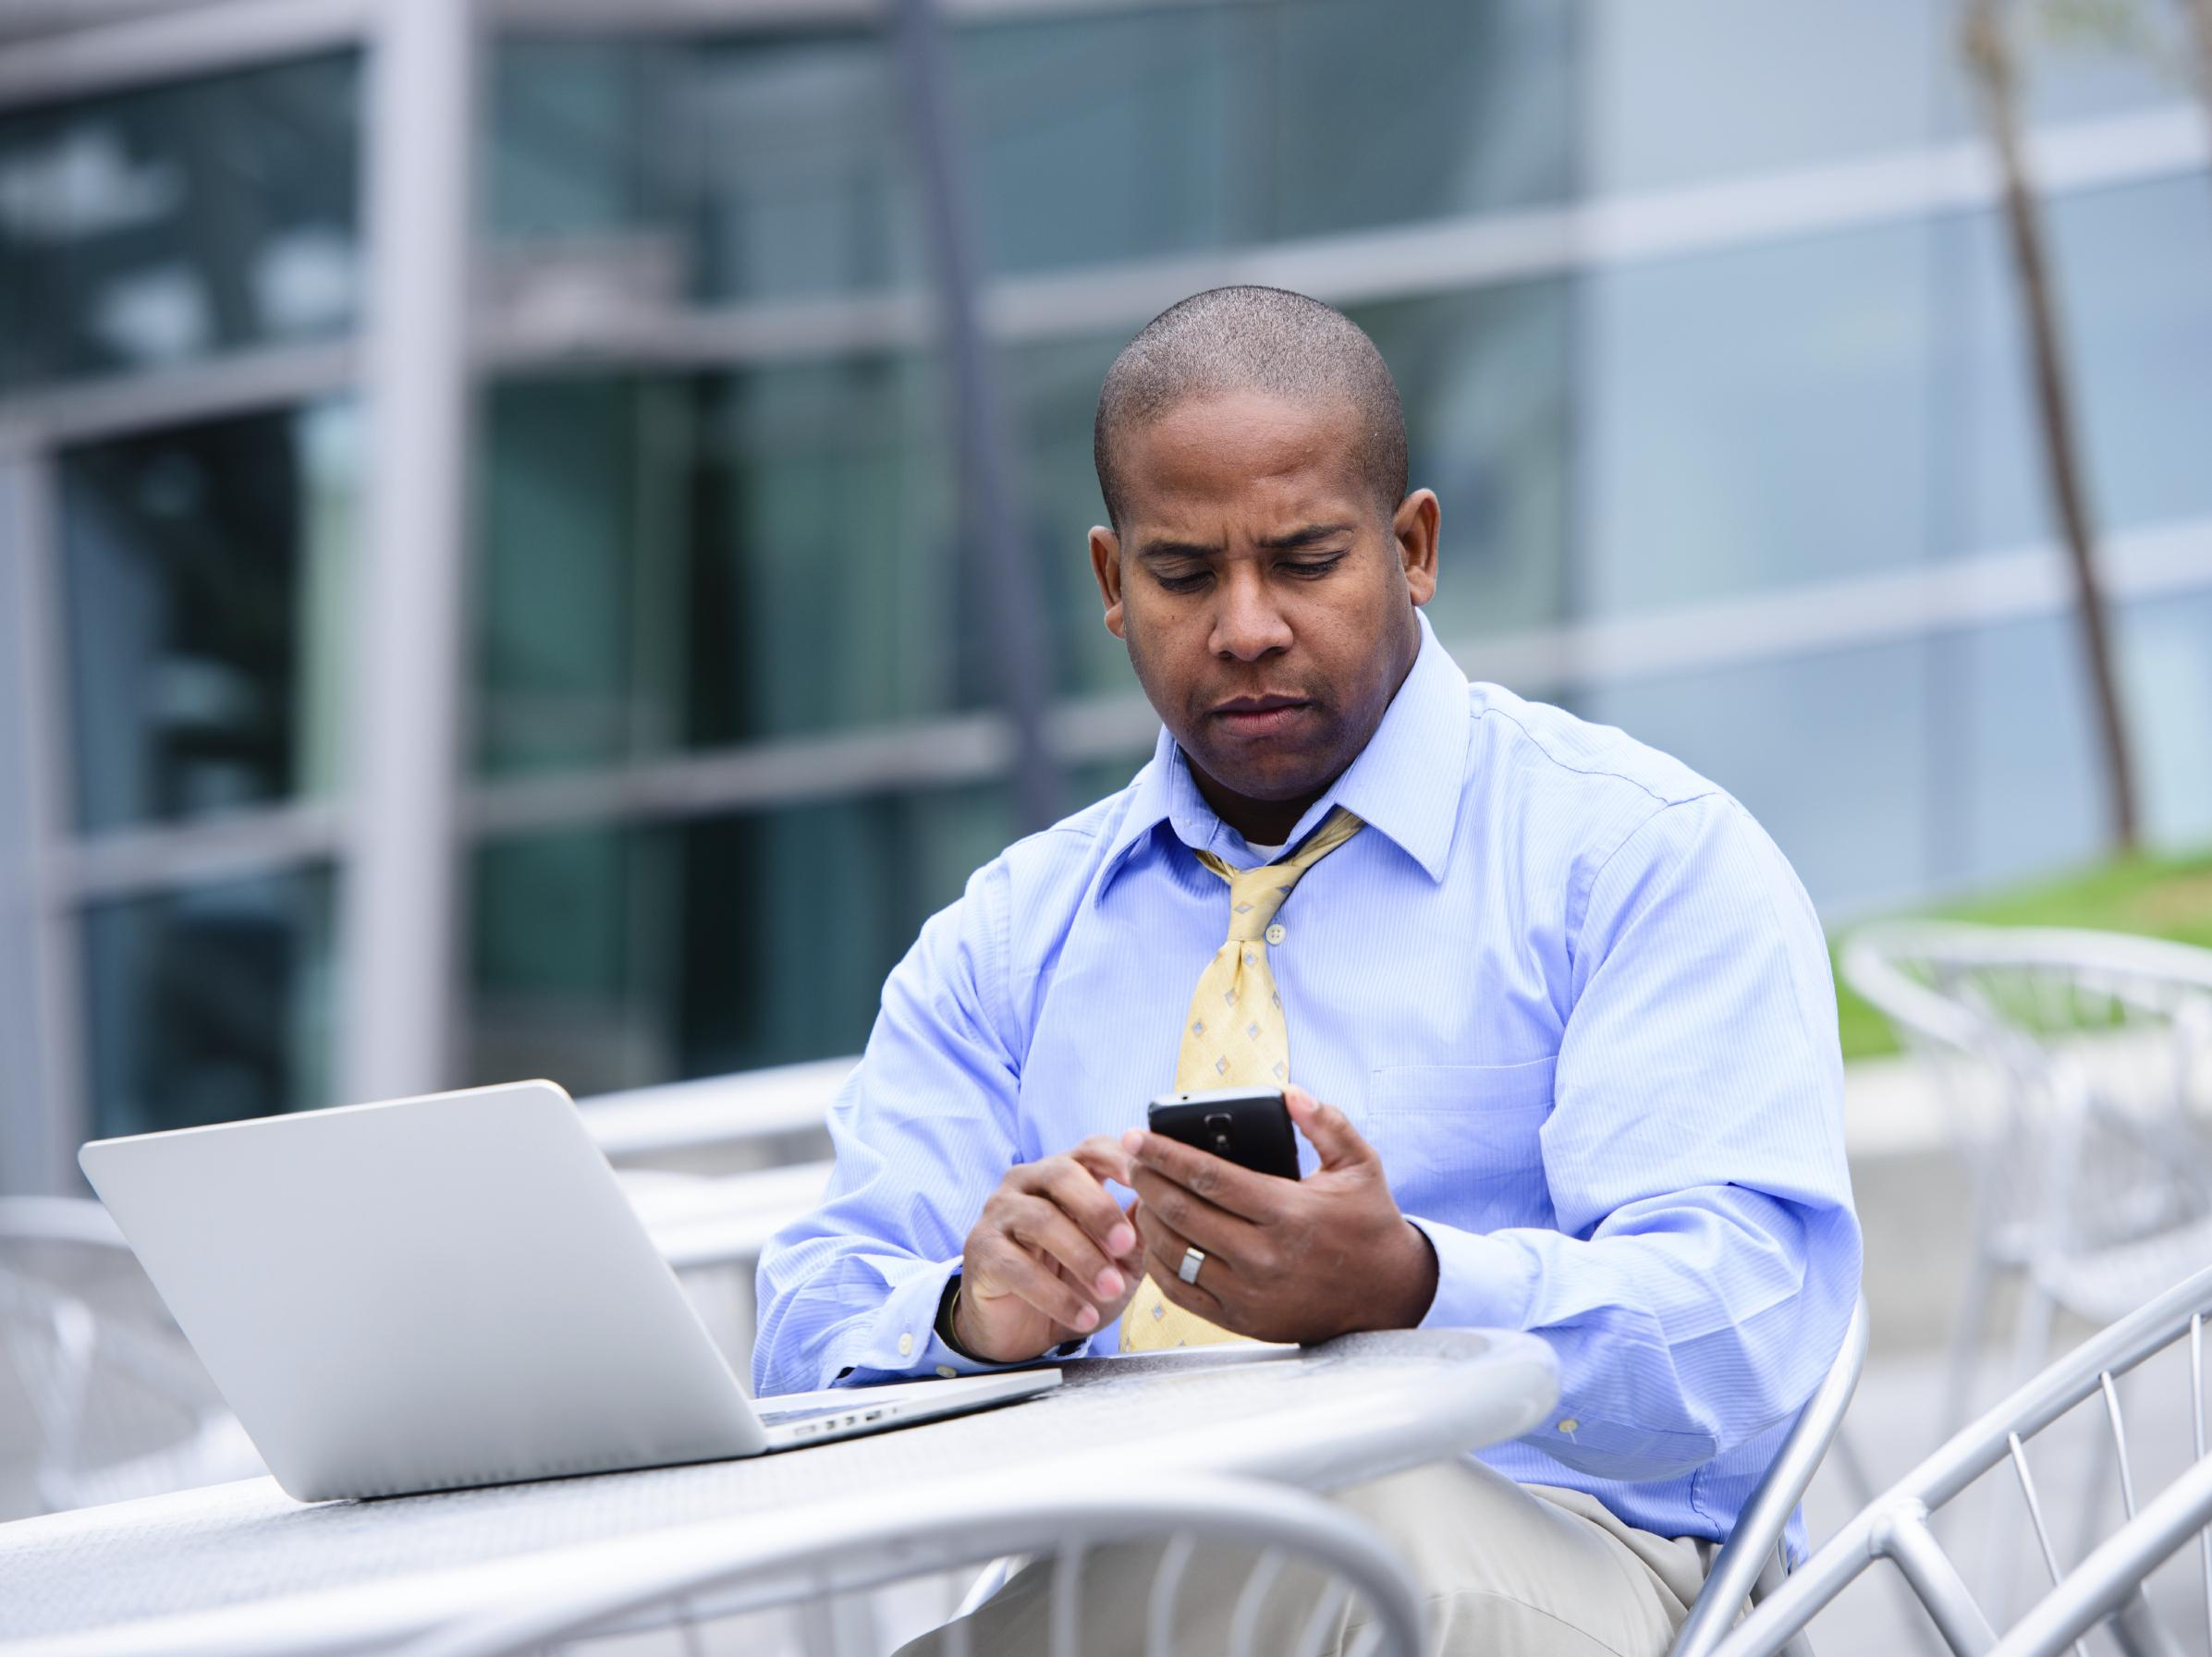 telecommuting research Much of the research on telecommuting has indicated the policy tends to benefit  employees and their employers more than it detracts.